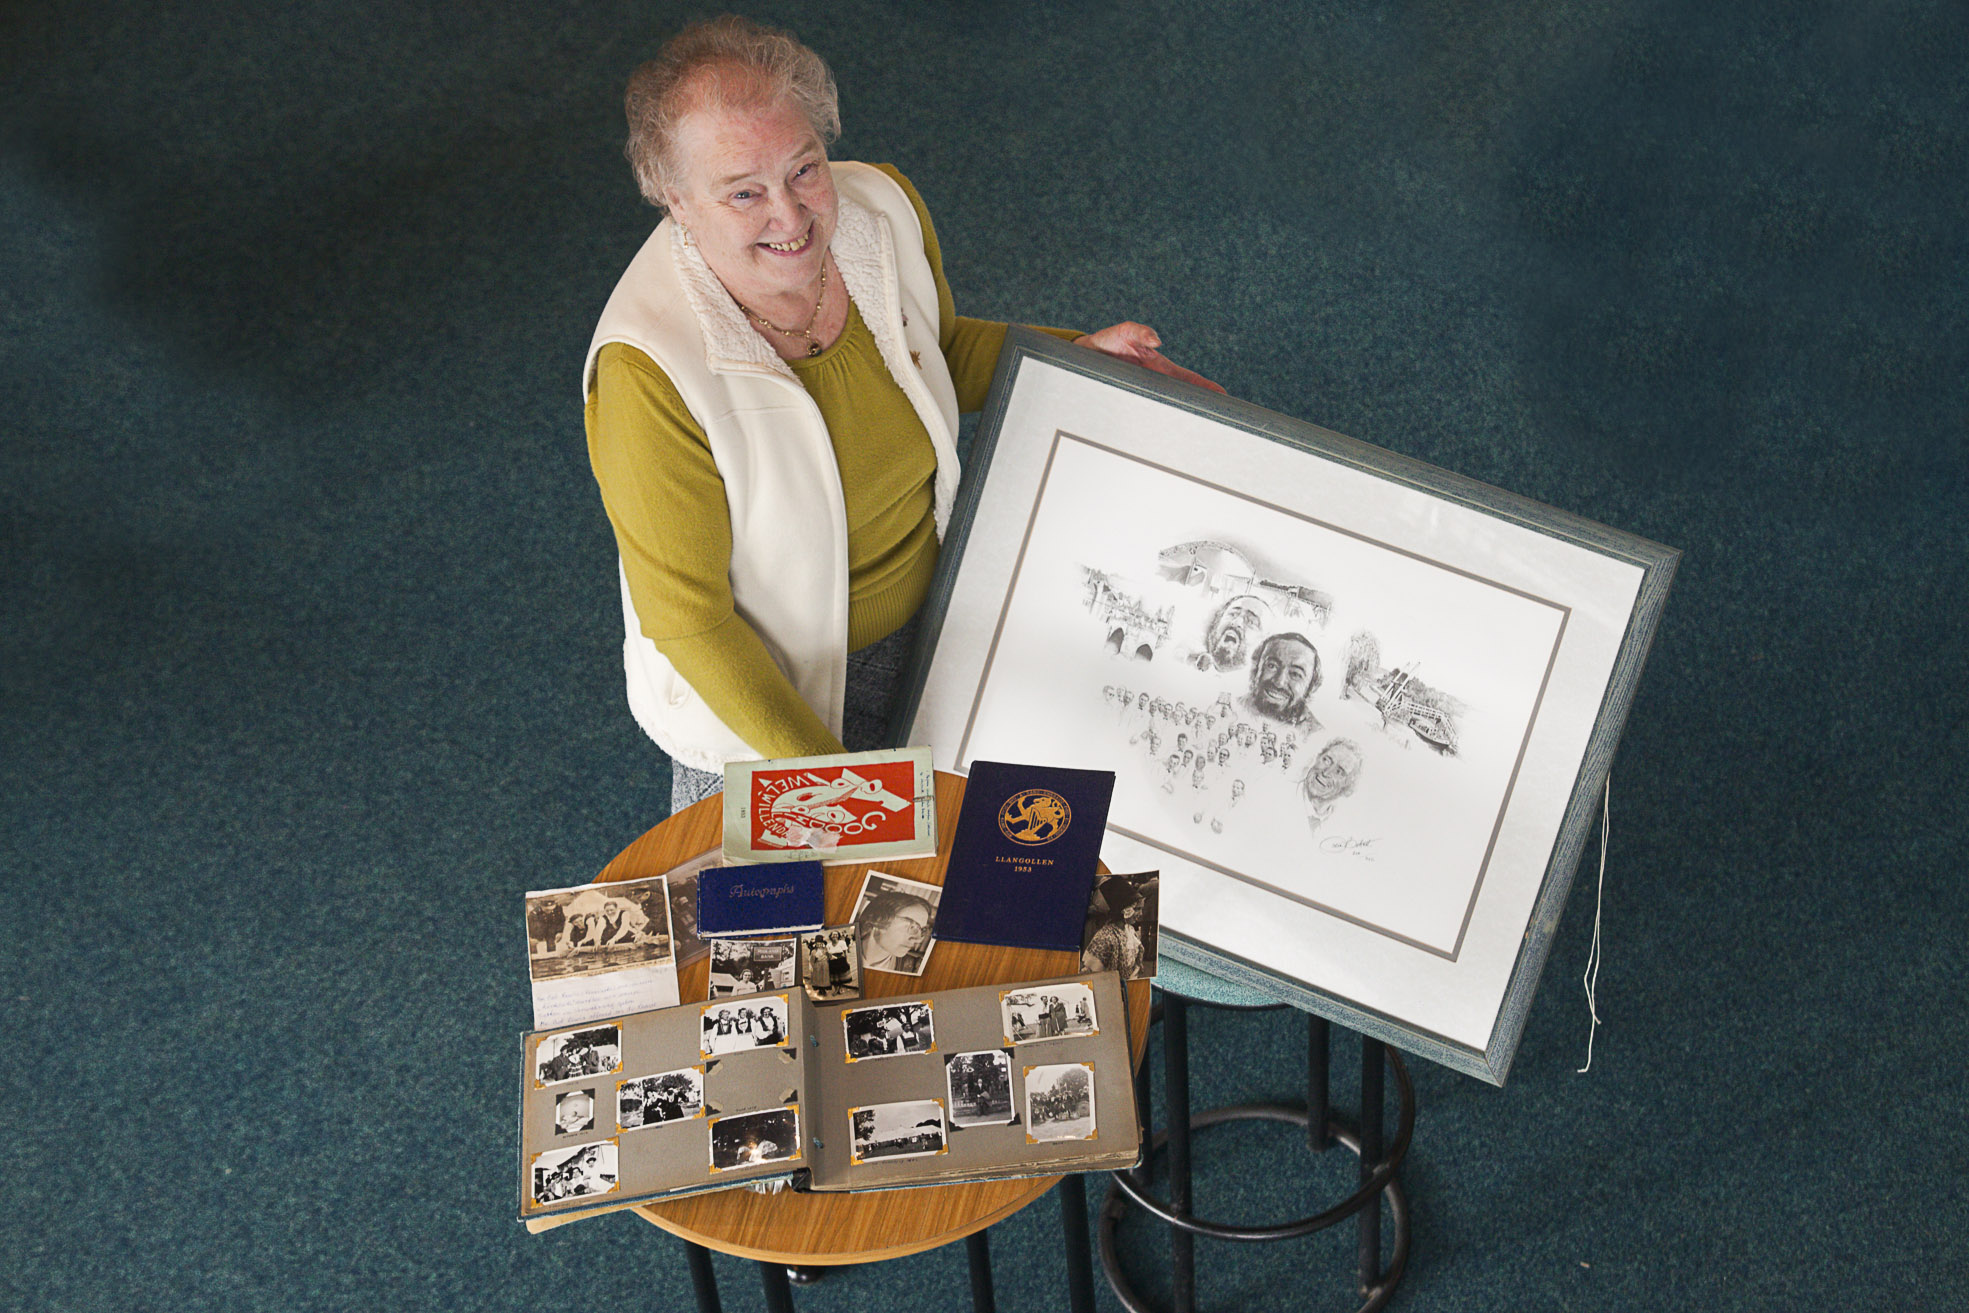 Llangollen Eisteddfod pictured is Hafwen Ryder, with her Eisteddfod memorabilia.